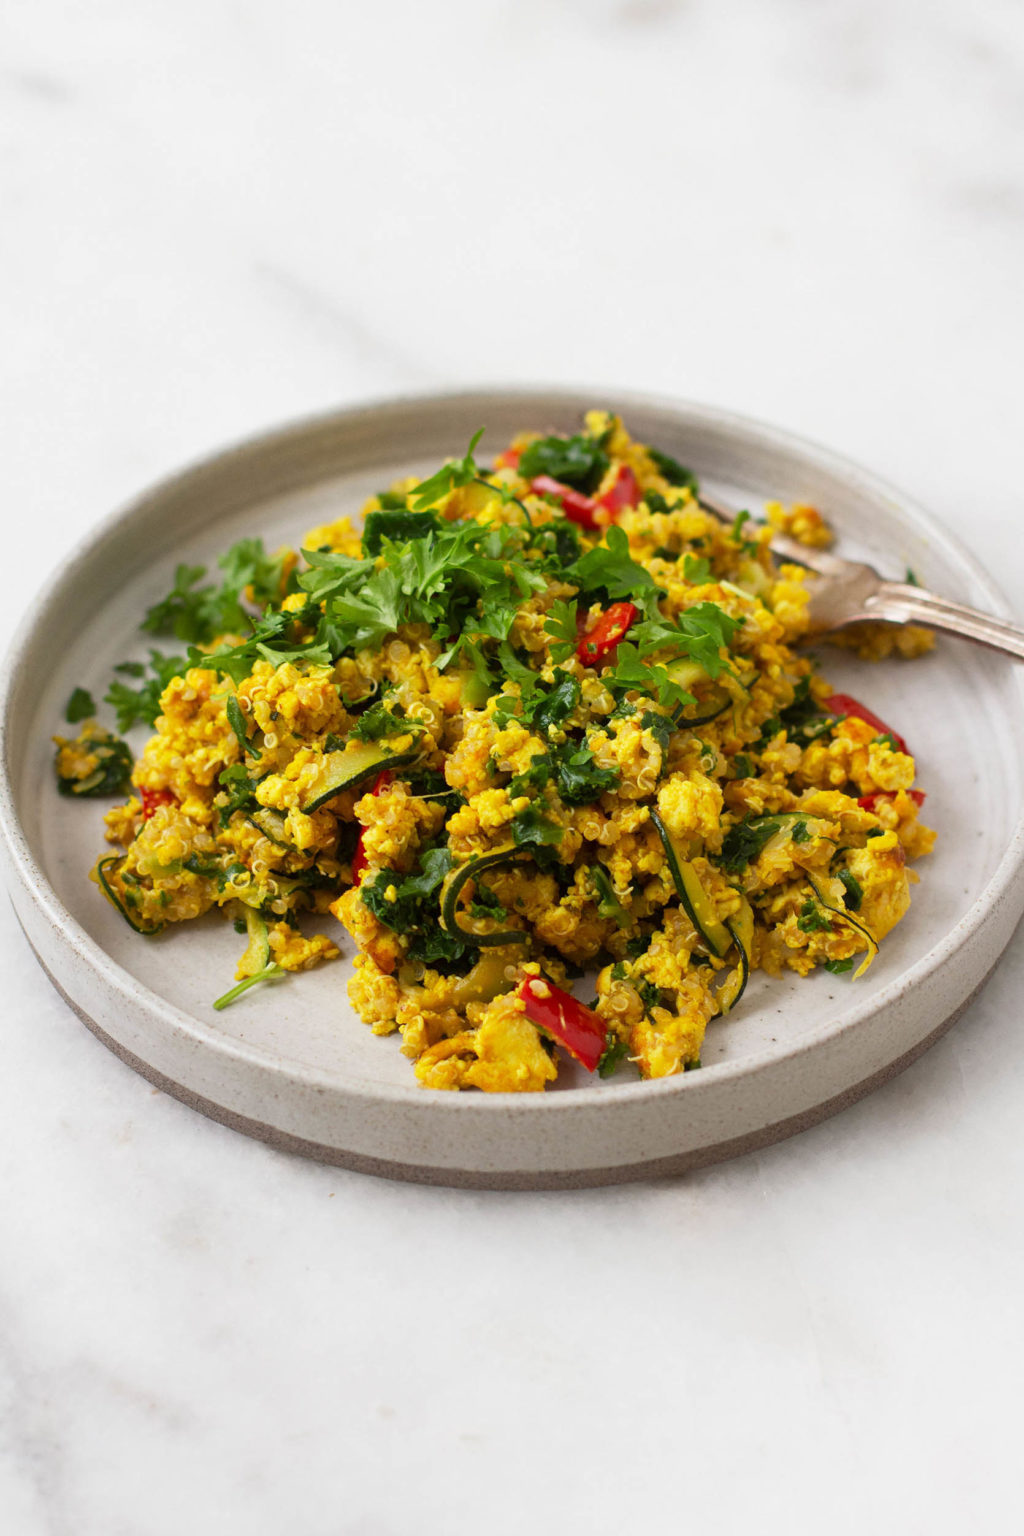 A vibrant, colorful plate of vegan tofu vegetable scramble with quinoa folded in. Topped with fresh, chopped herbs.